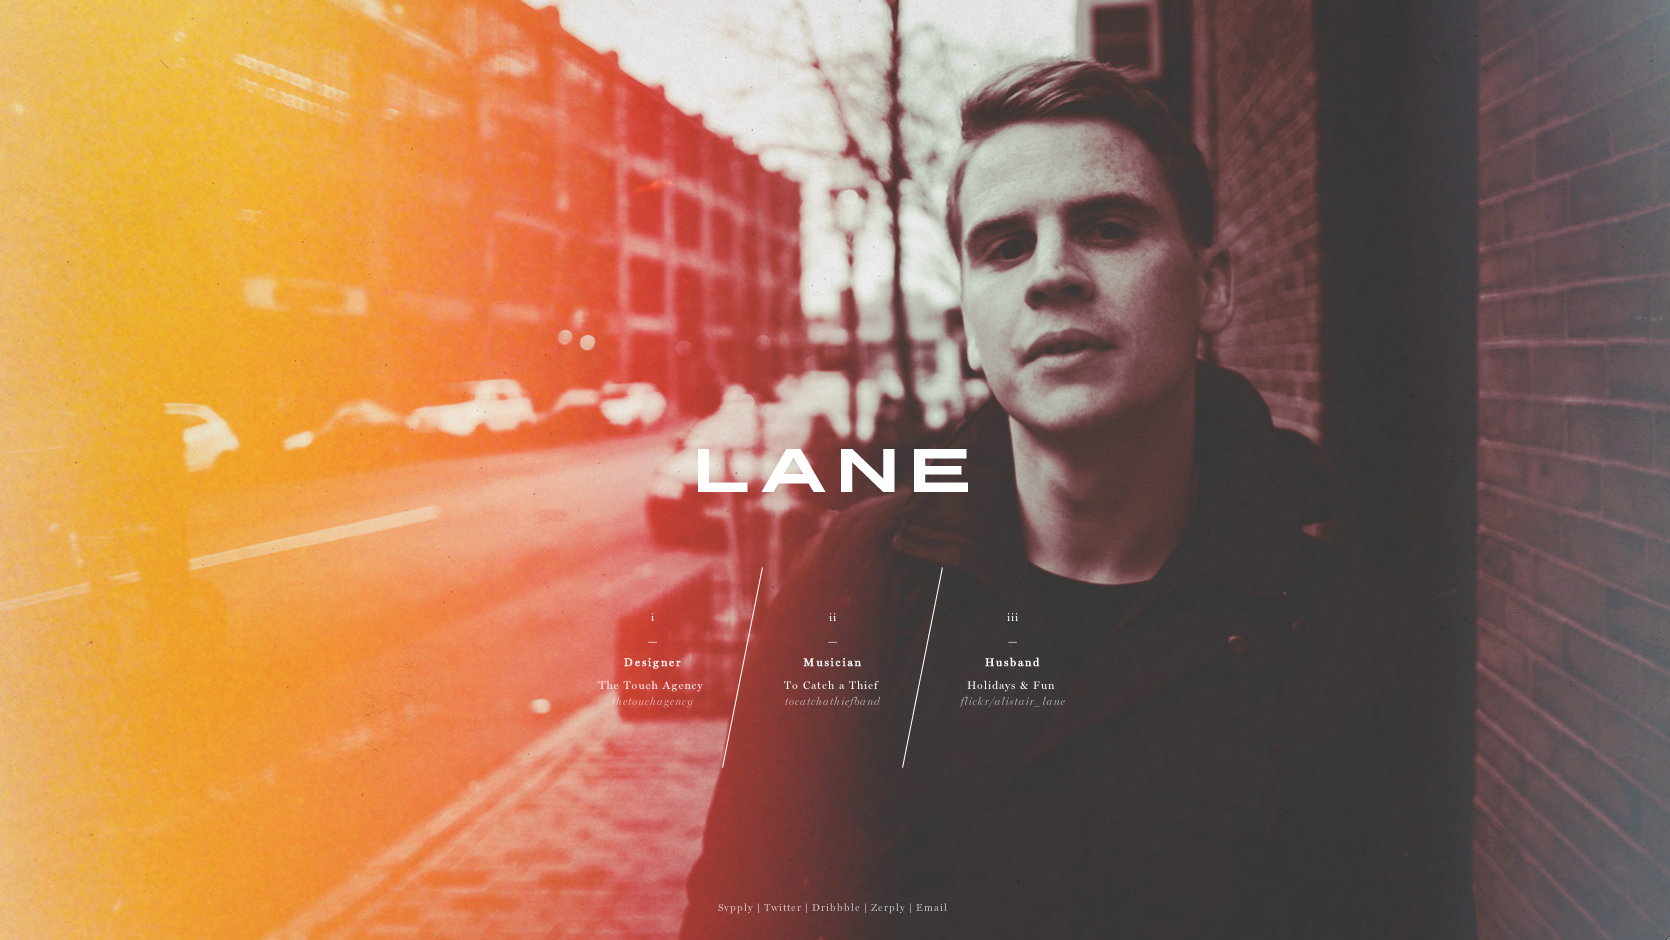 LANE Website Screenshot